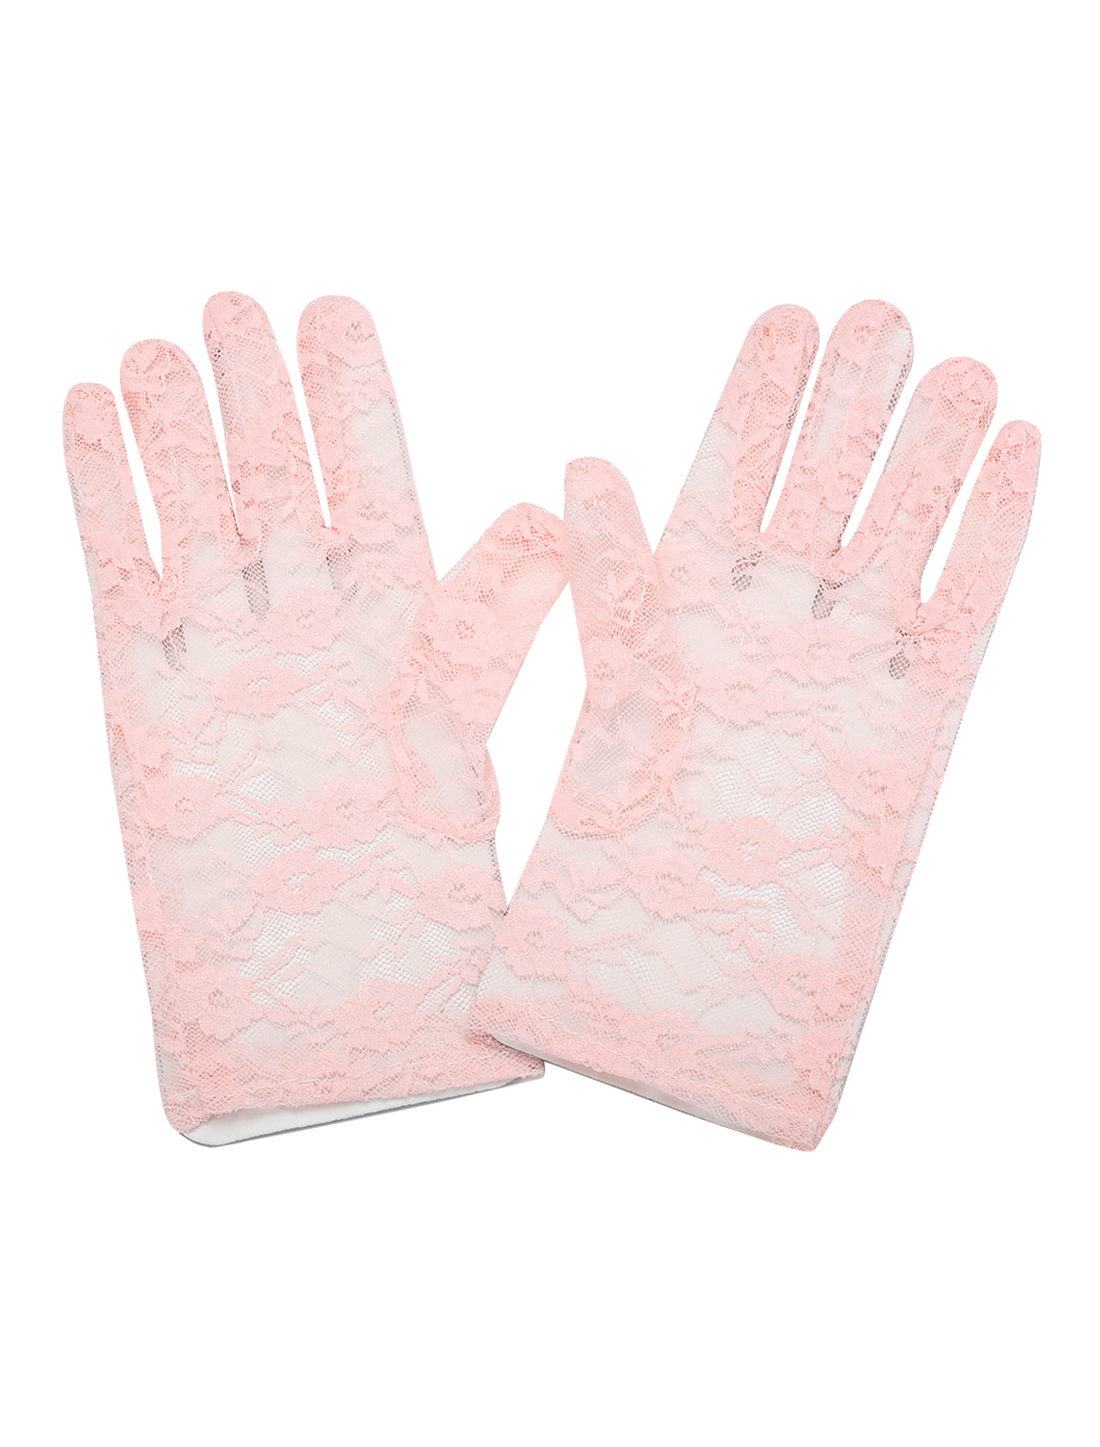 Lady Floral Lace Wrist Length Full Finger Gloves Pair Pink